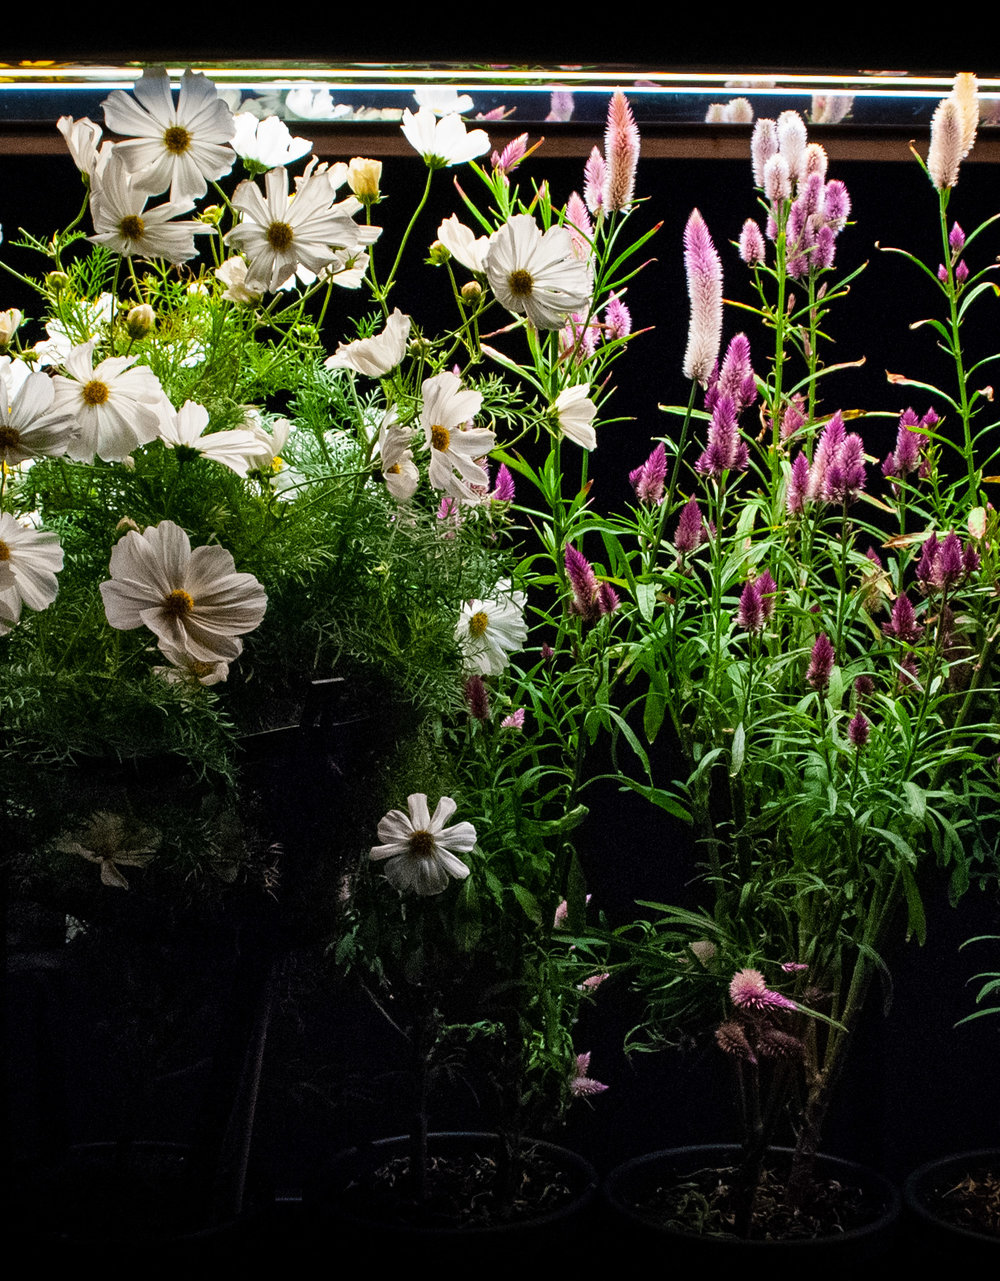 BloomInLight with Cosmos and Celosia